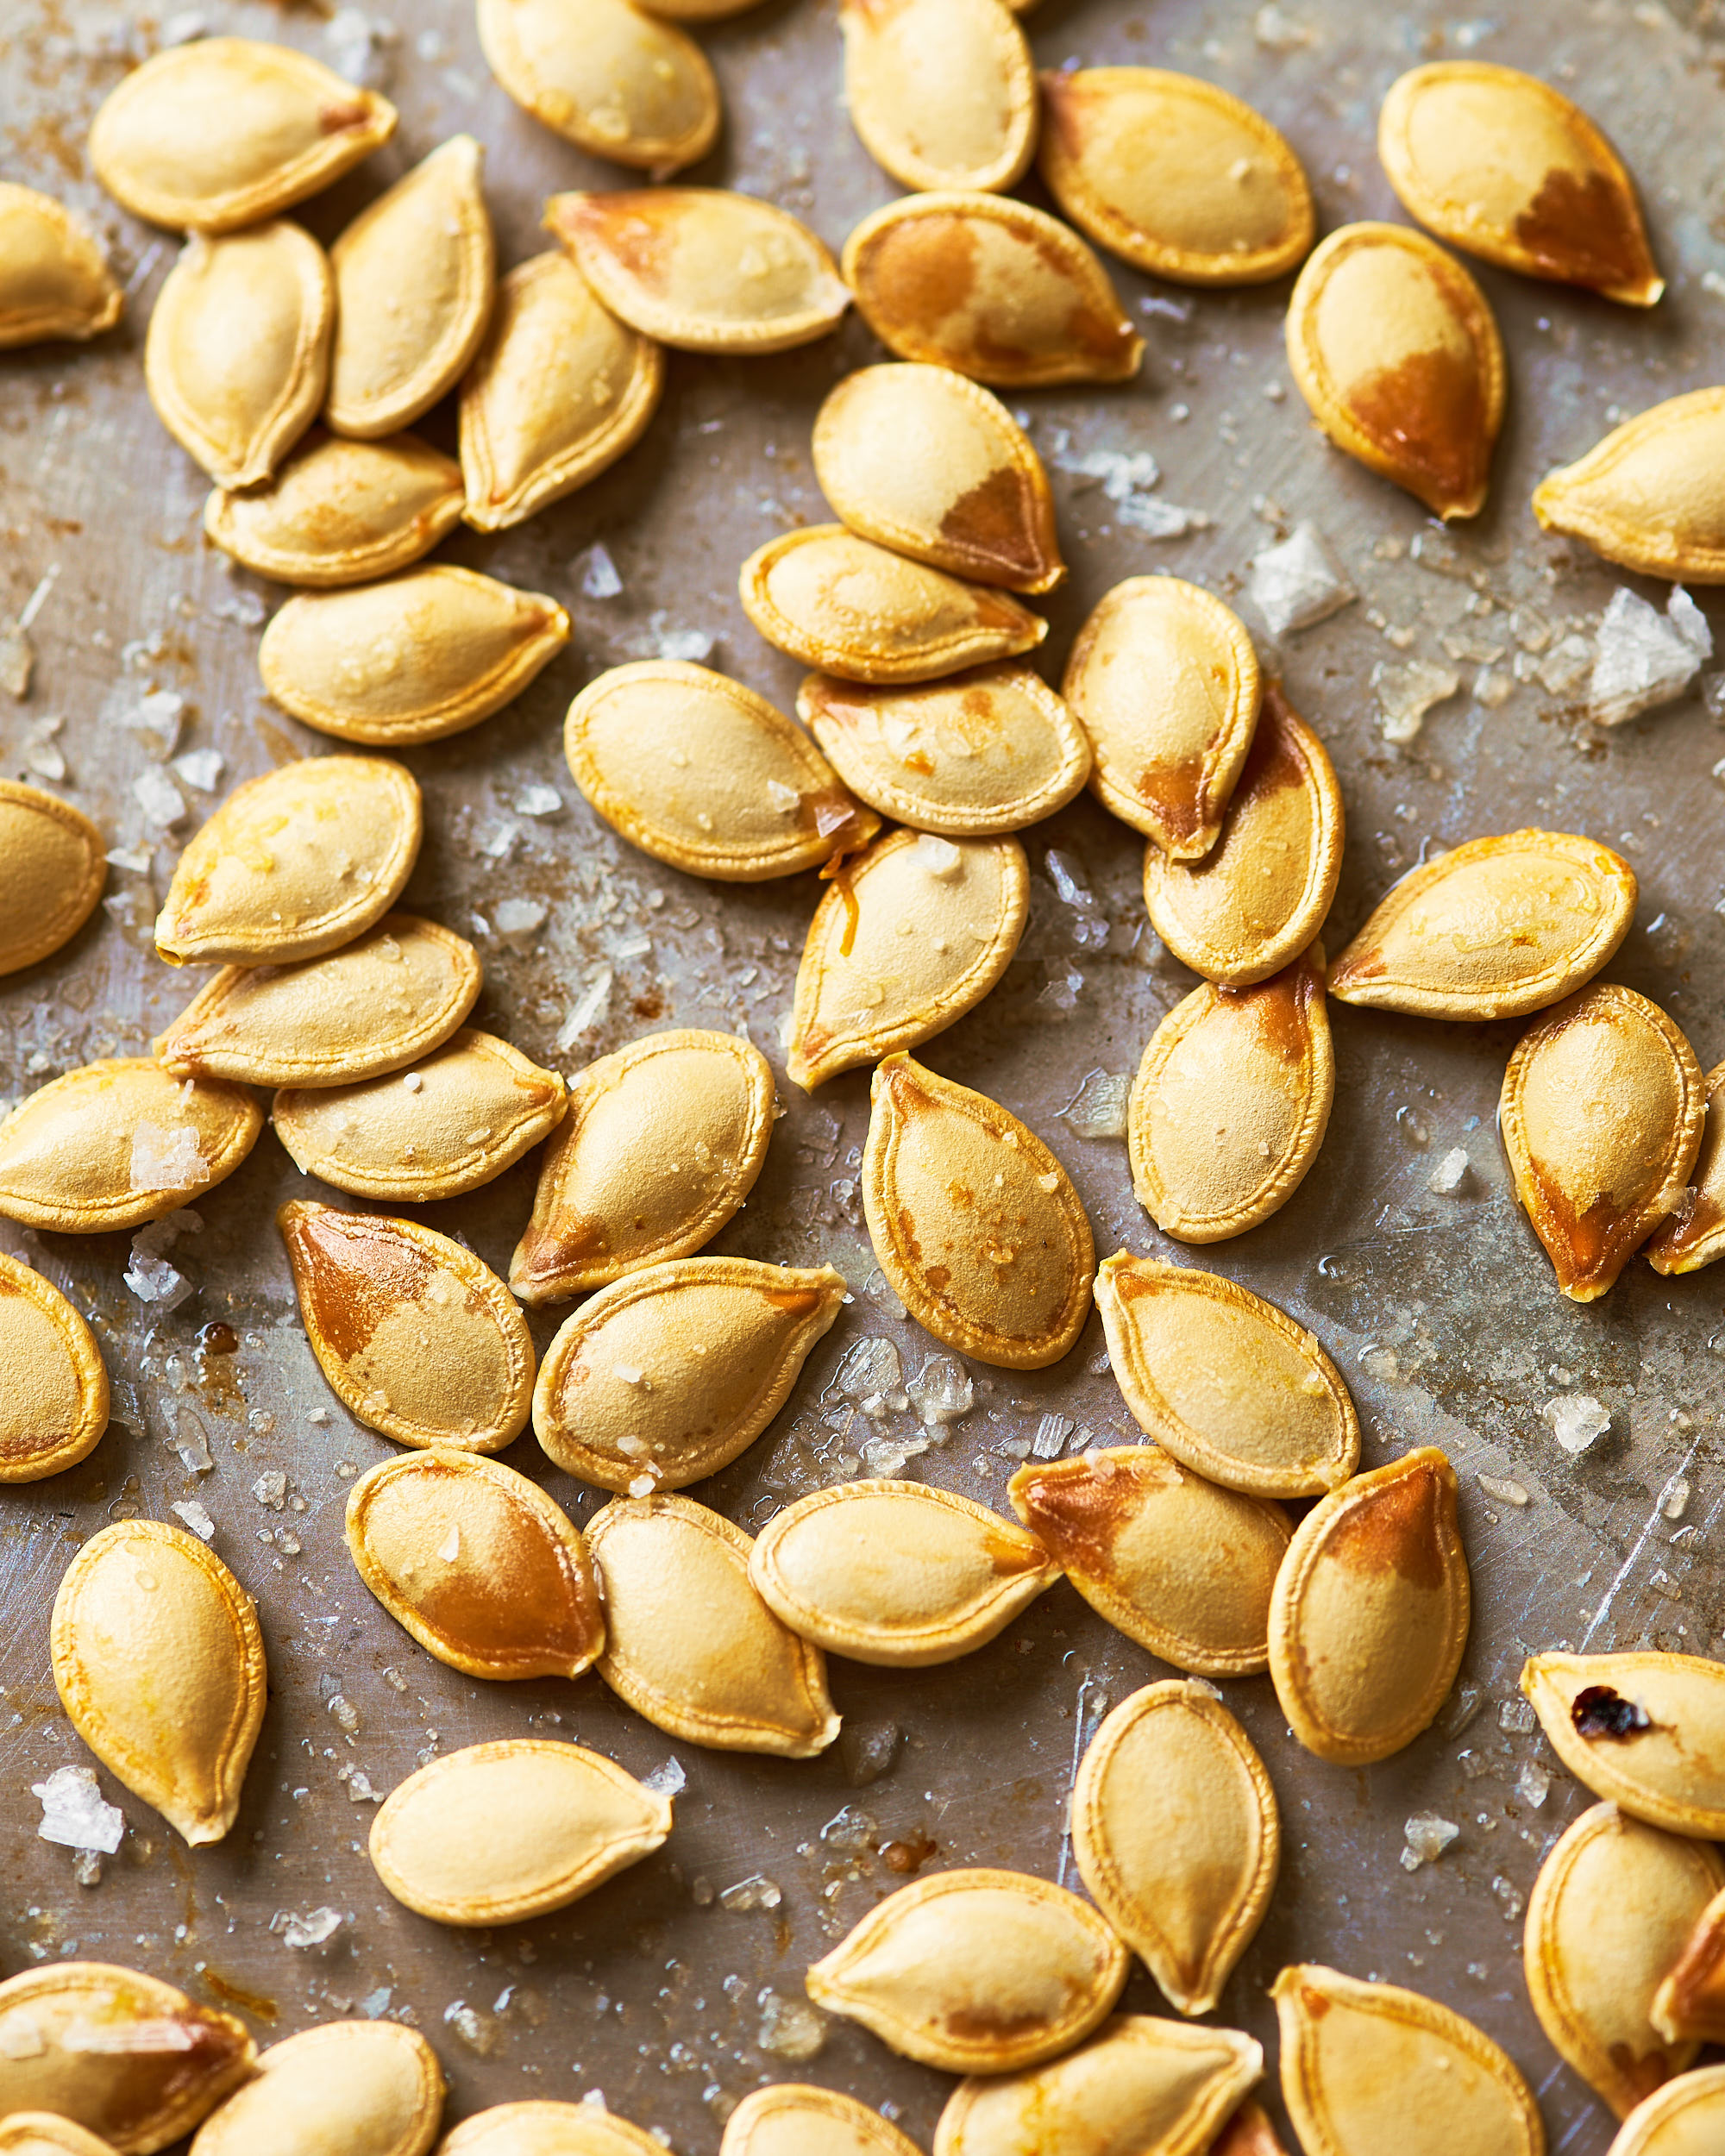 How To Clean and Roast Pumpkin Seeds | Kitchn